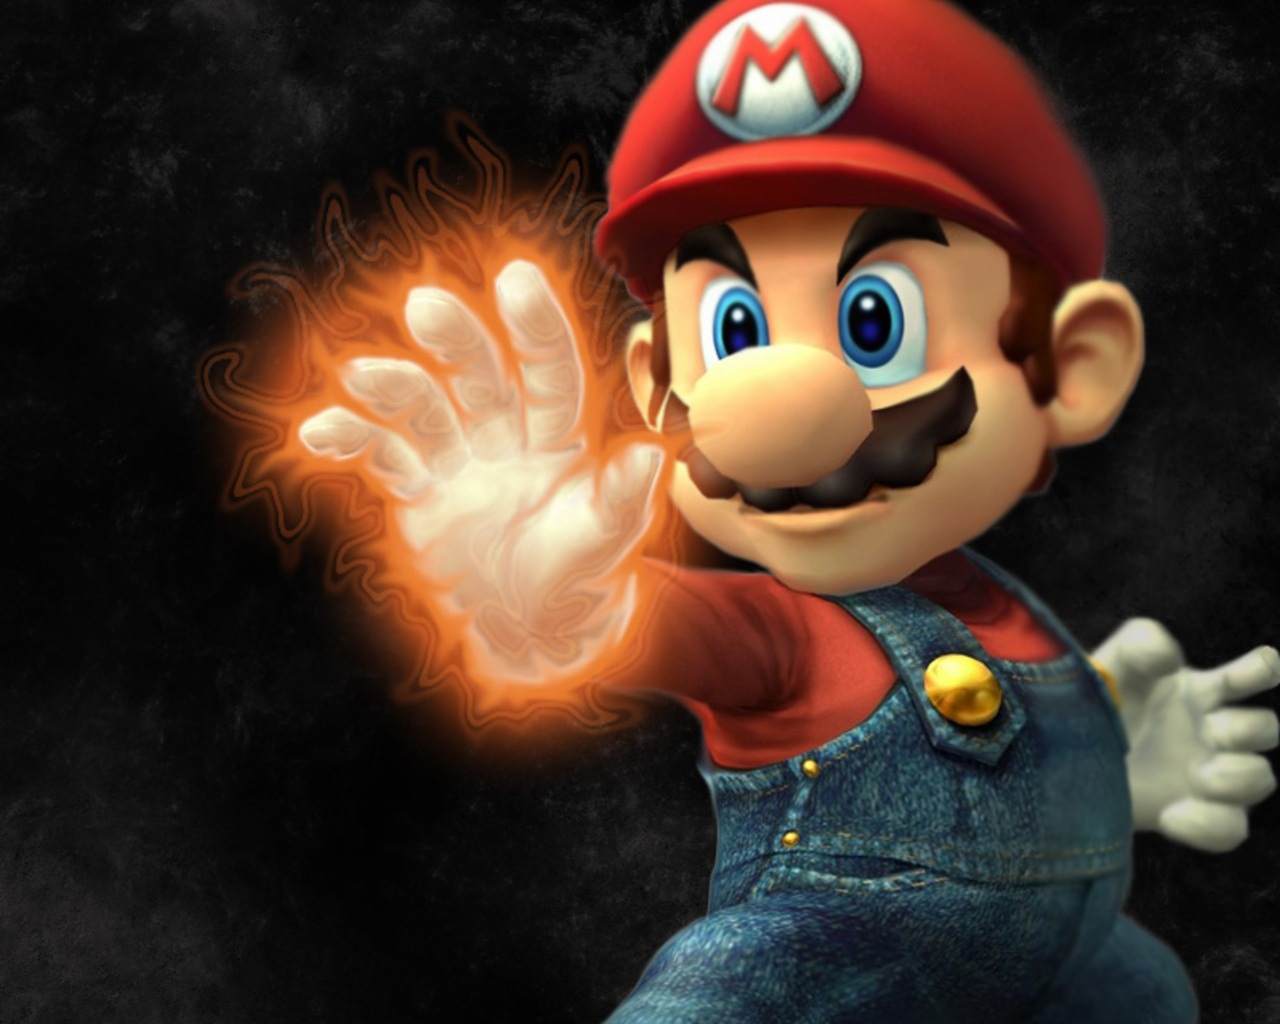 Here is a great collection of Super Mario Wallpapers that you can 1280x1024